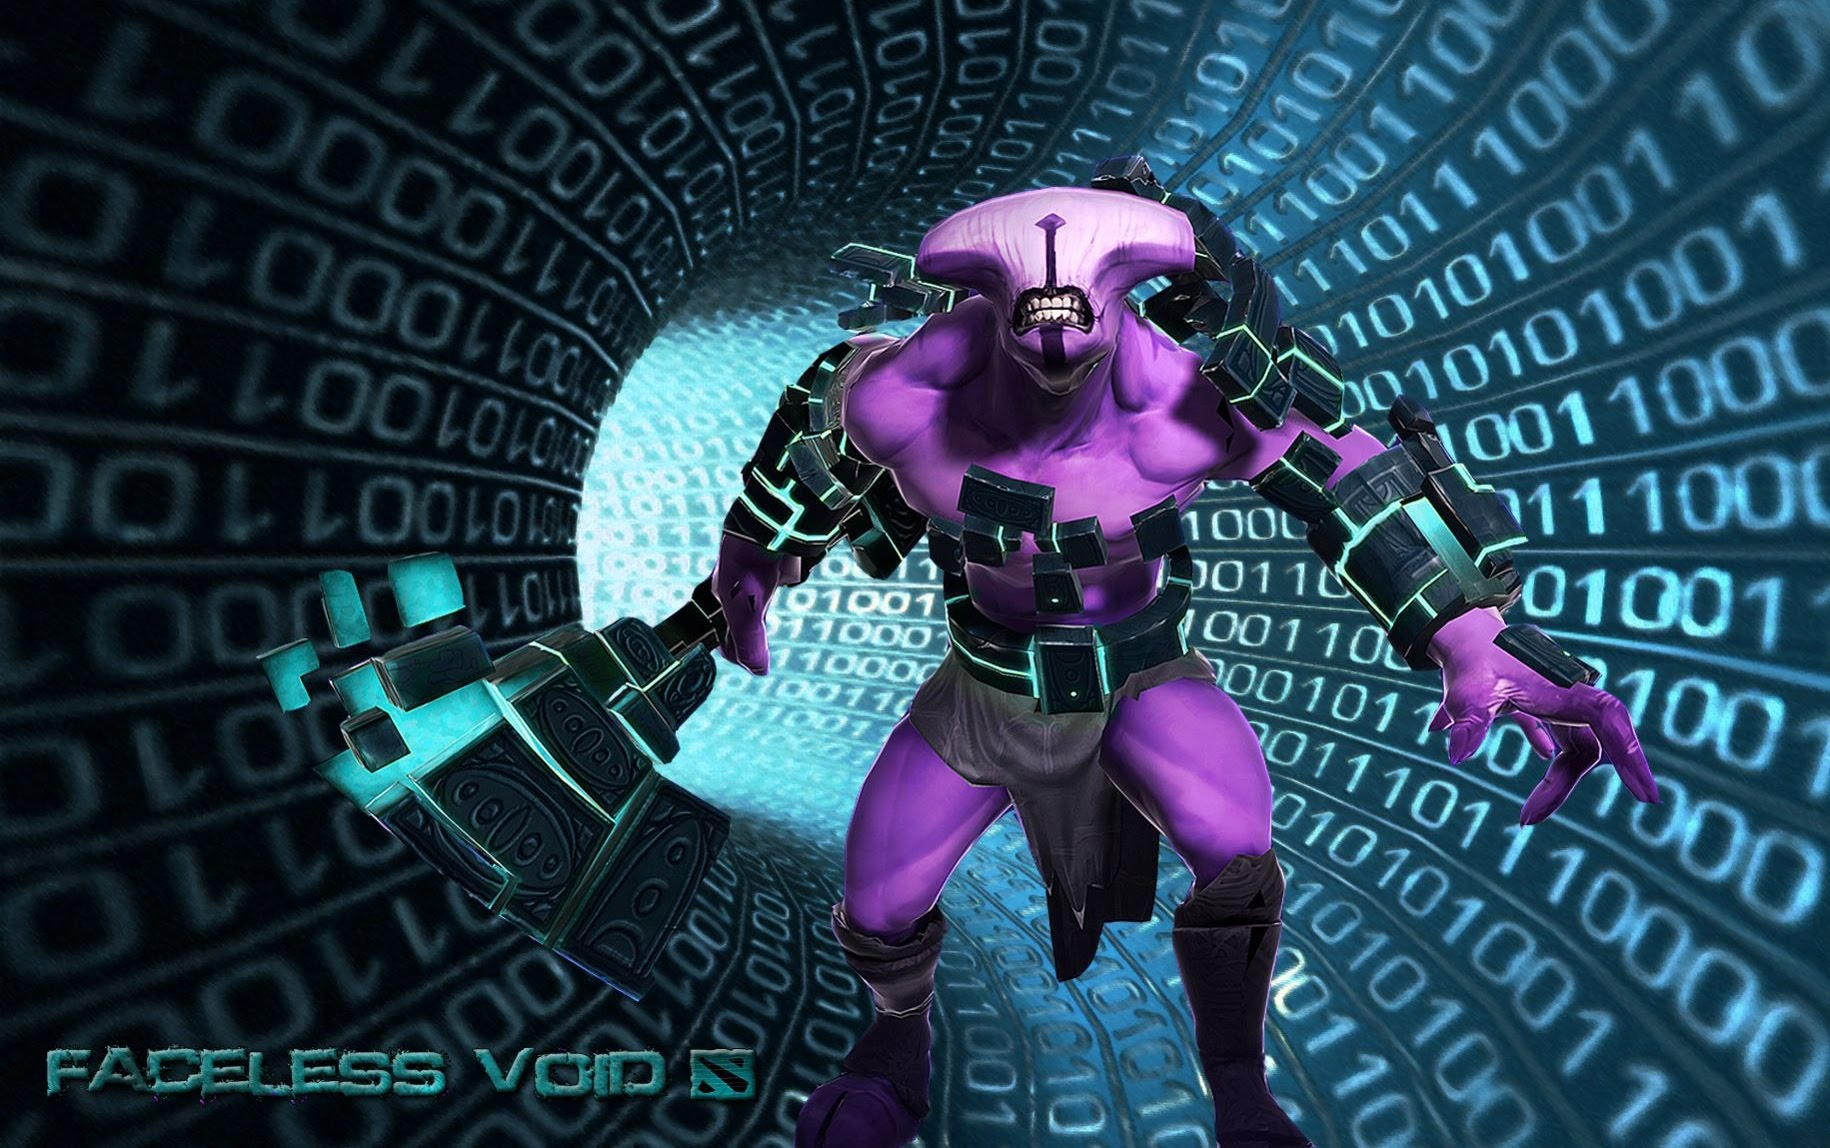 Dota2 : Faceless Void HQ wallpapers